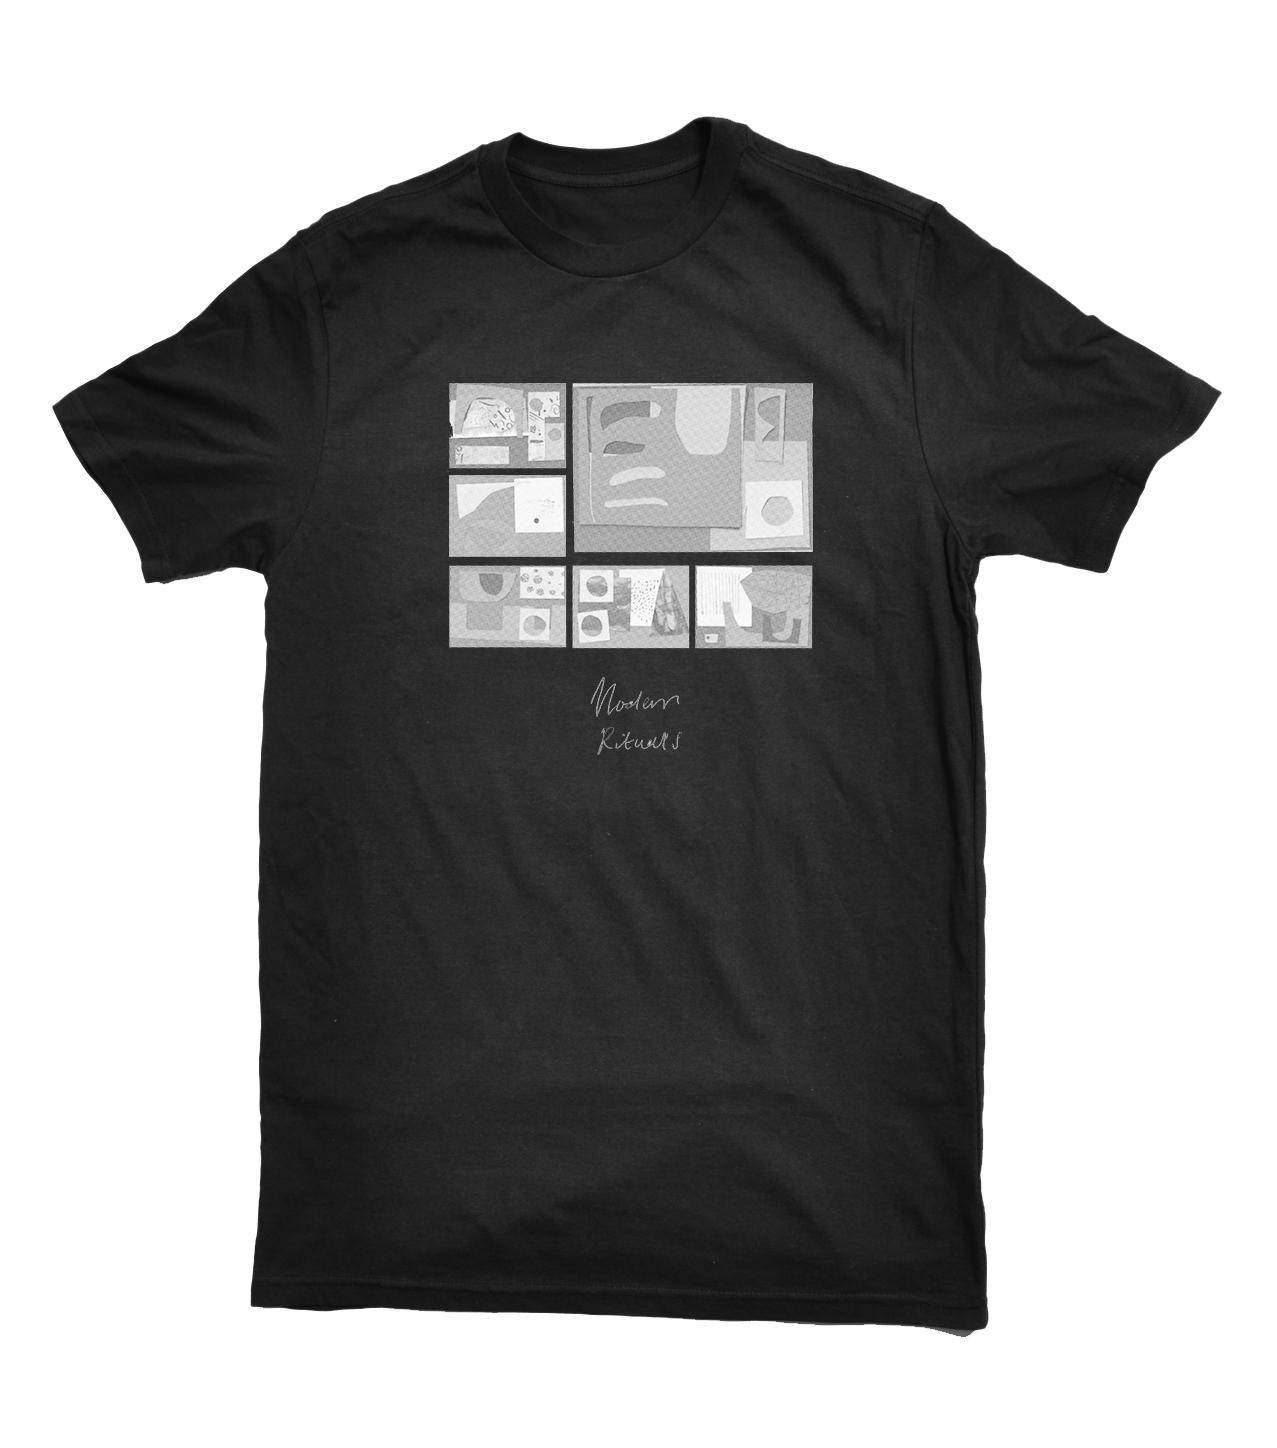 Modern Rituals - 'The Light That Leaks In' shirt